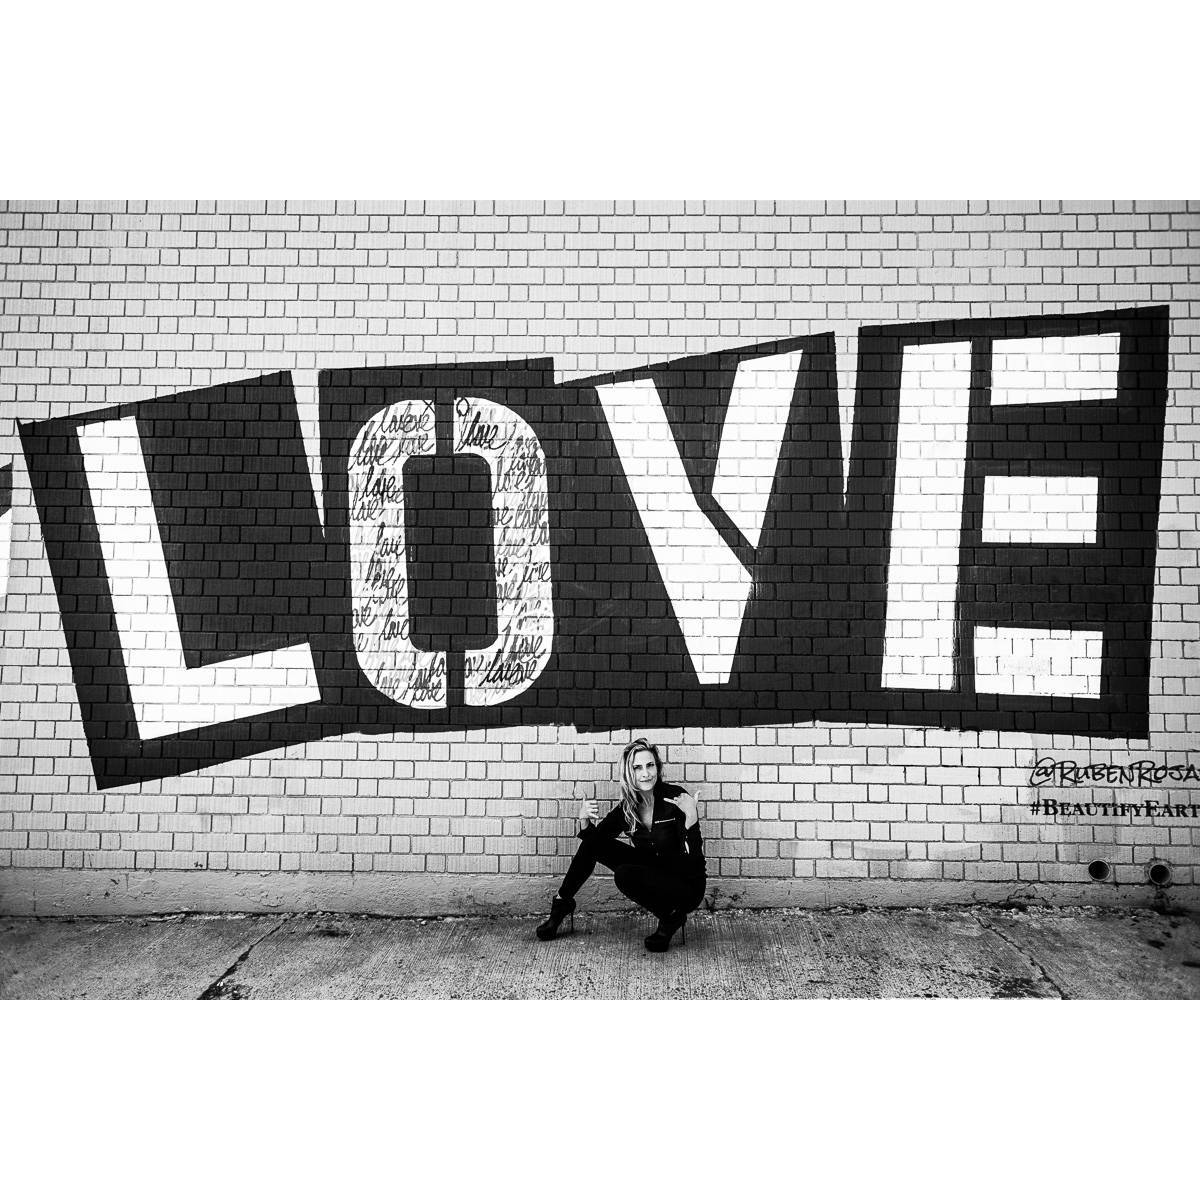 @willleferve took the picture. @rubenrojas did the street art.